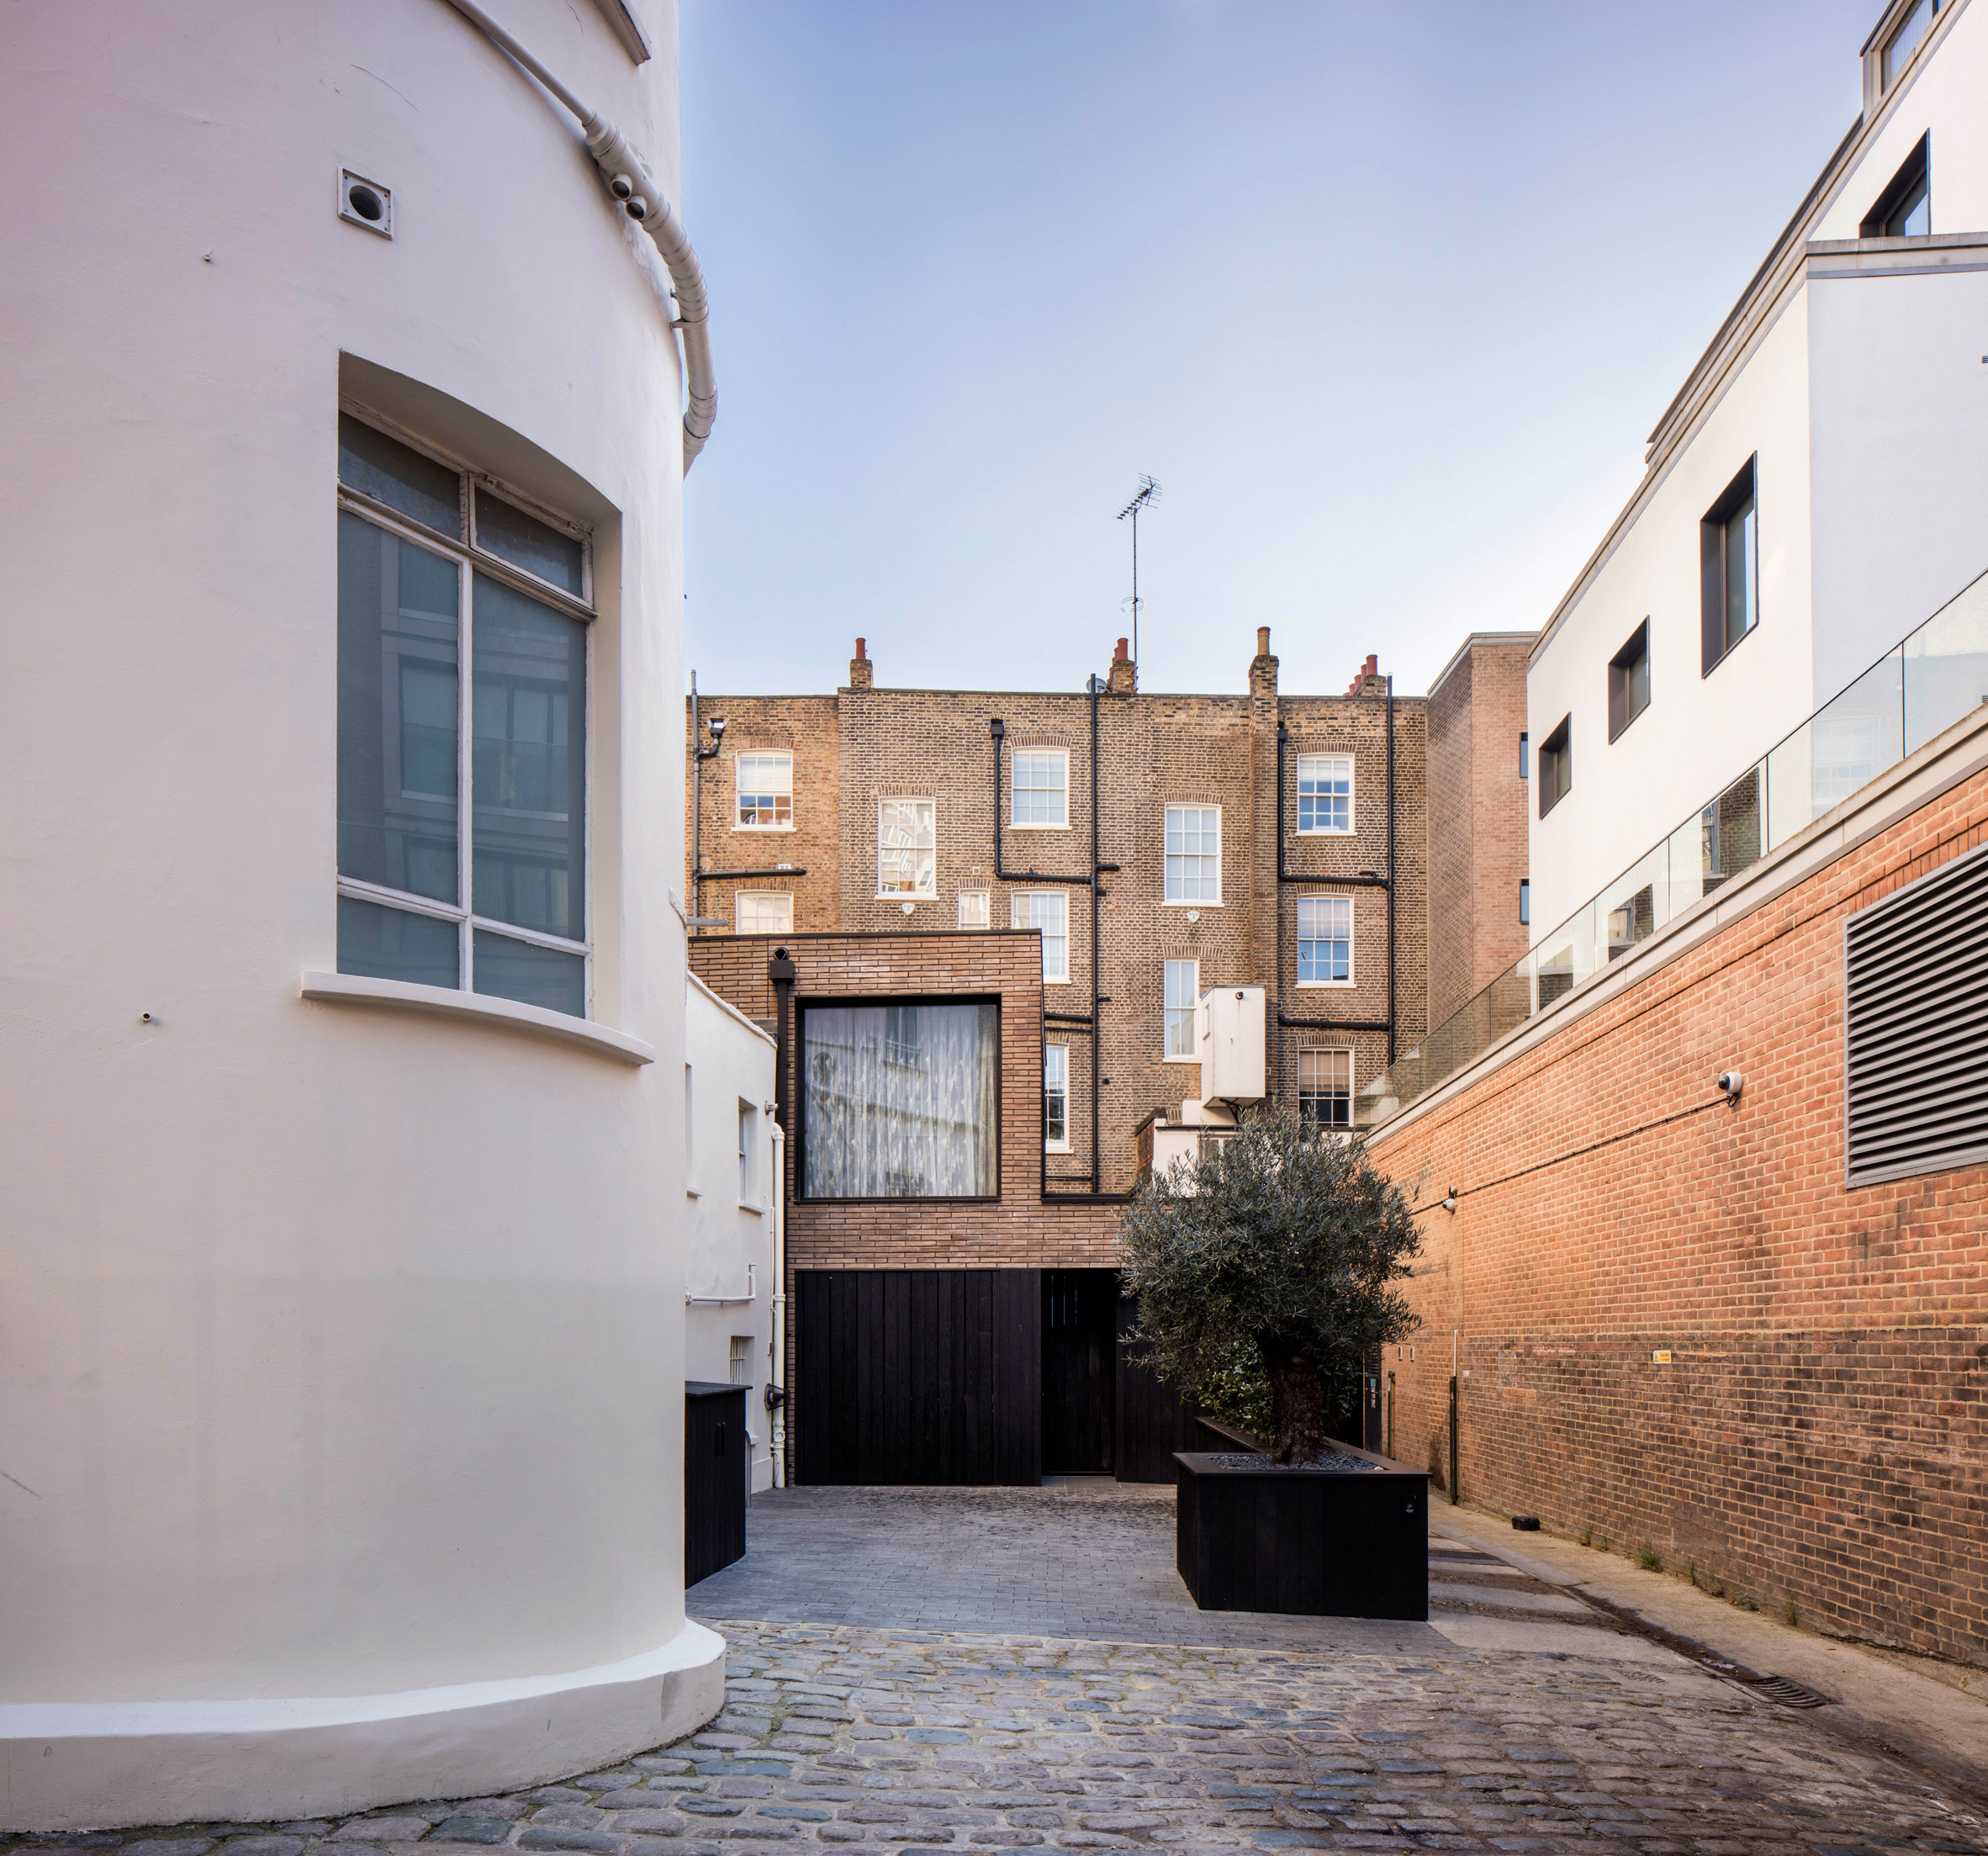 Pivoting louvres conceal windows set into brick facade of mews house by Belsize Architects